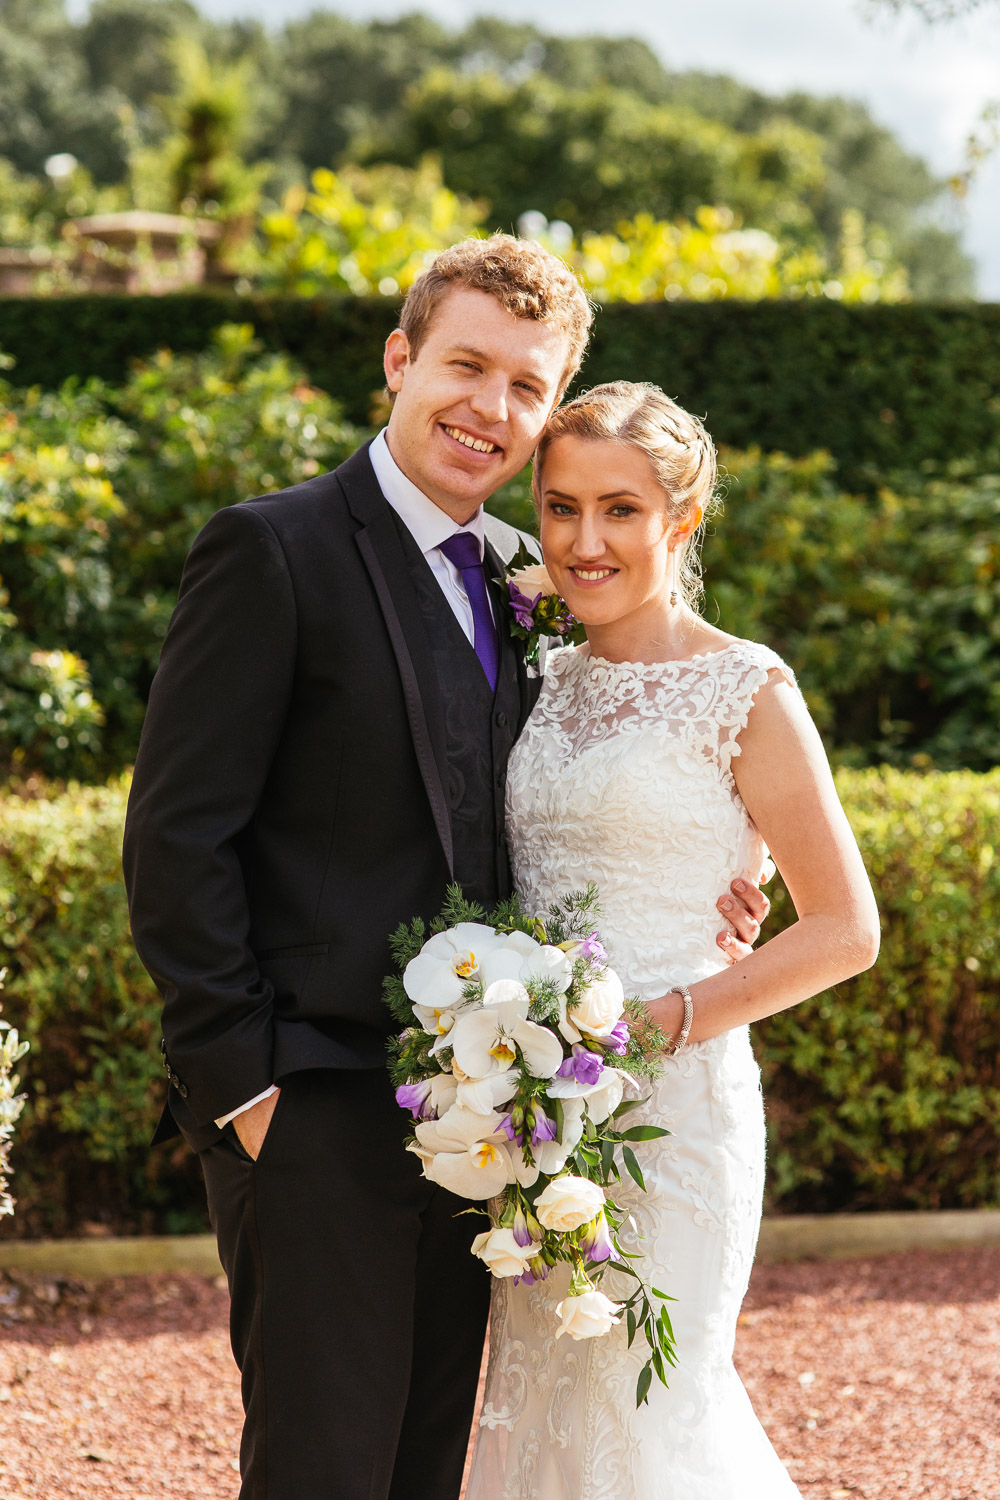 Siobhan-and-James-Wedding-Highlights-69.jpg